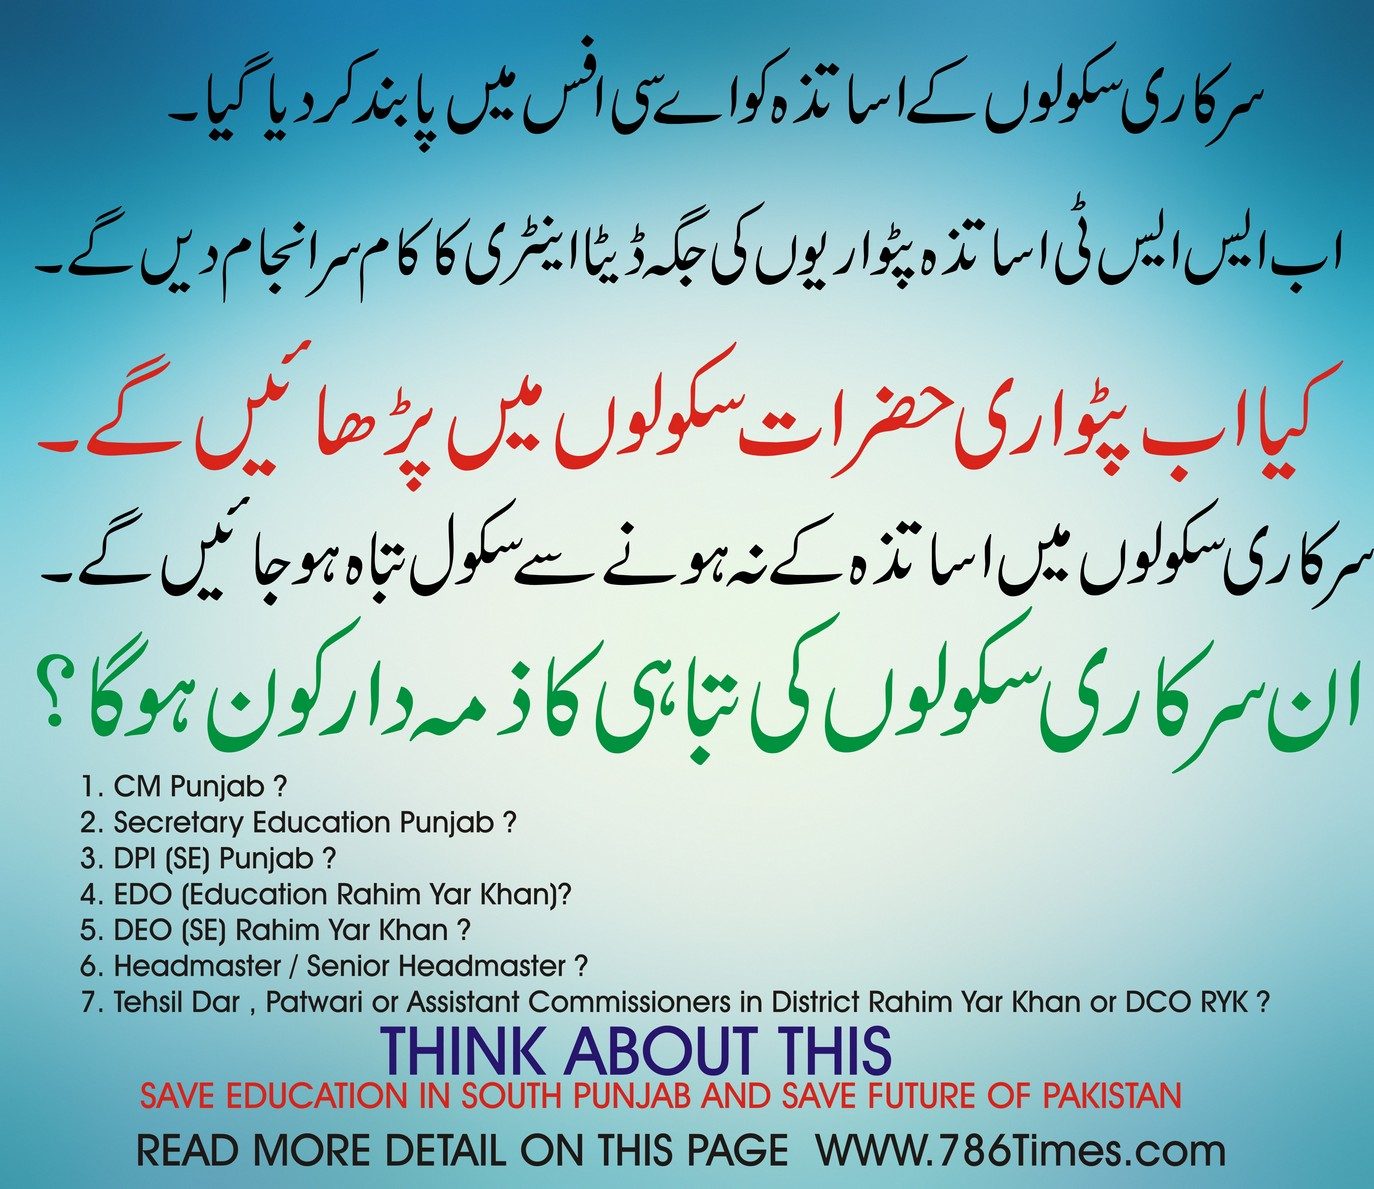 Save Education in South Punjab and Save Future of Pakistan